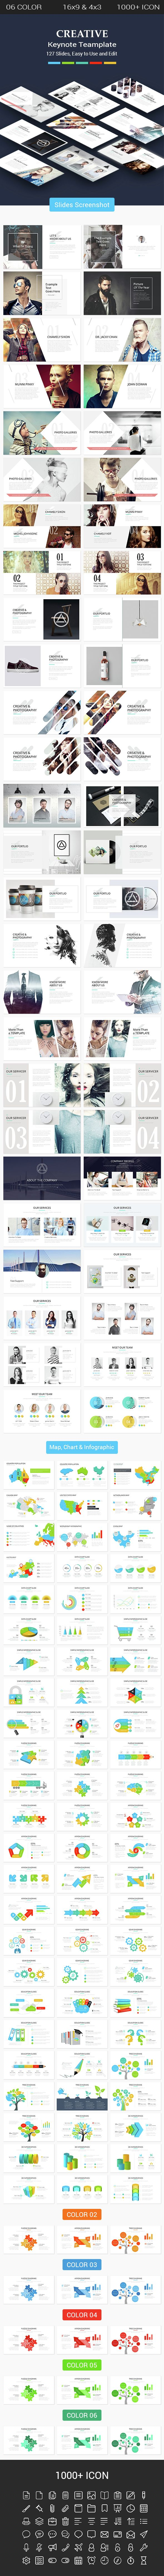 Creative Keynote Presentation Template. Download here: http://graphicriver.net/item/creative-keynote-presentation-template/14956907?ref=ksioks